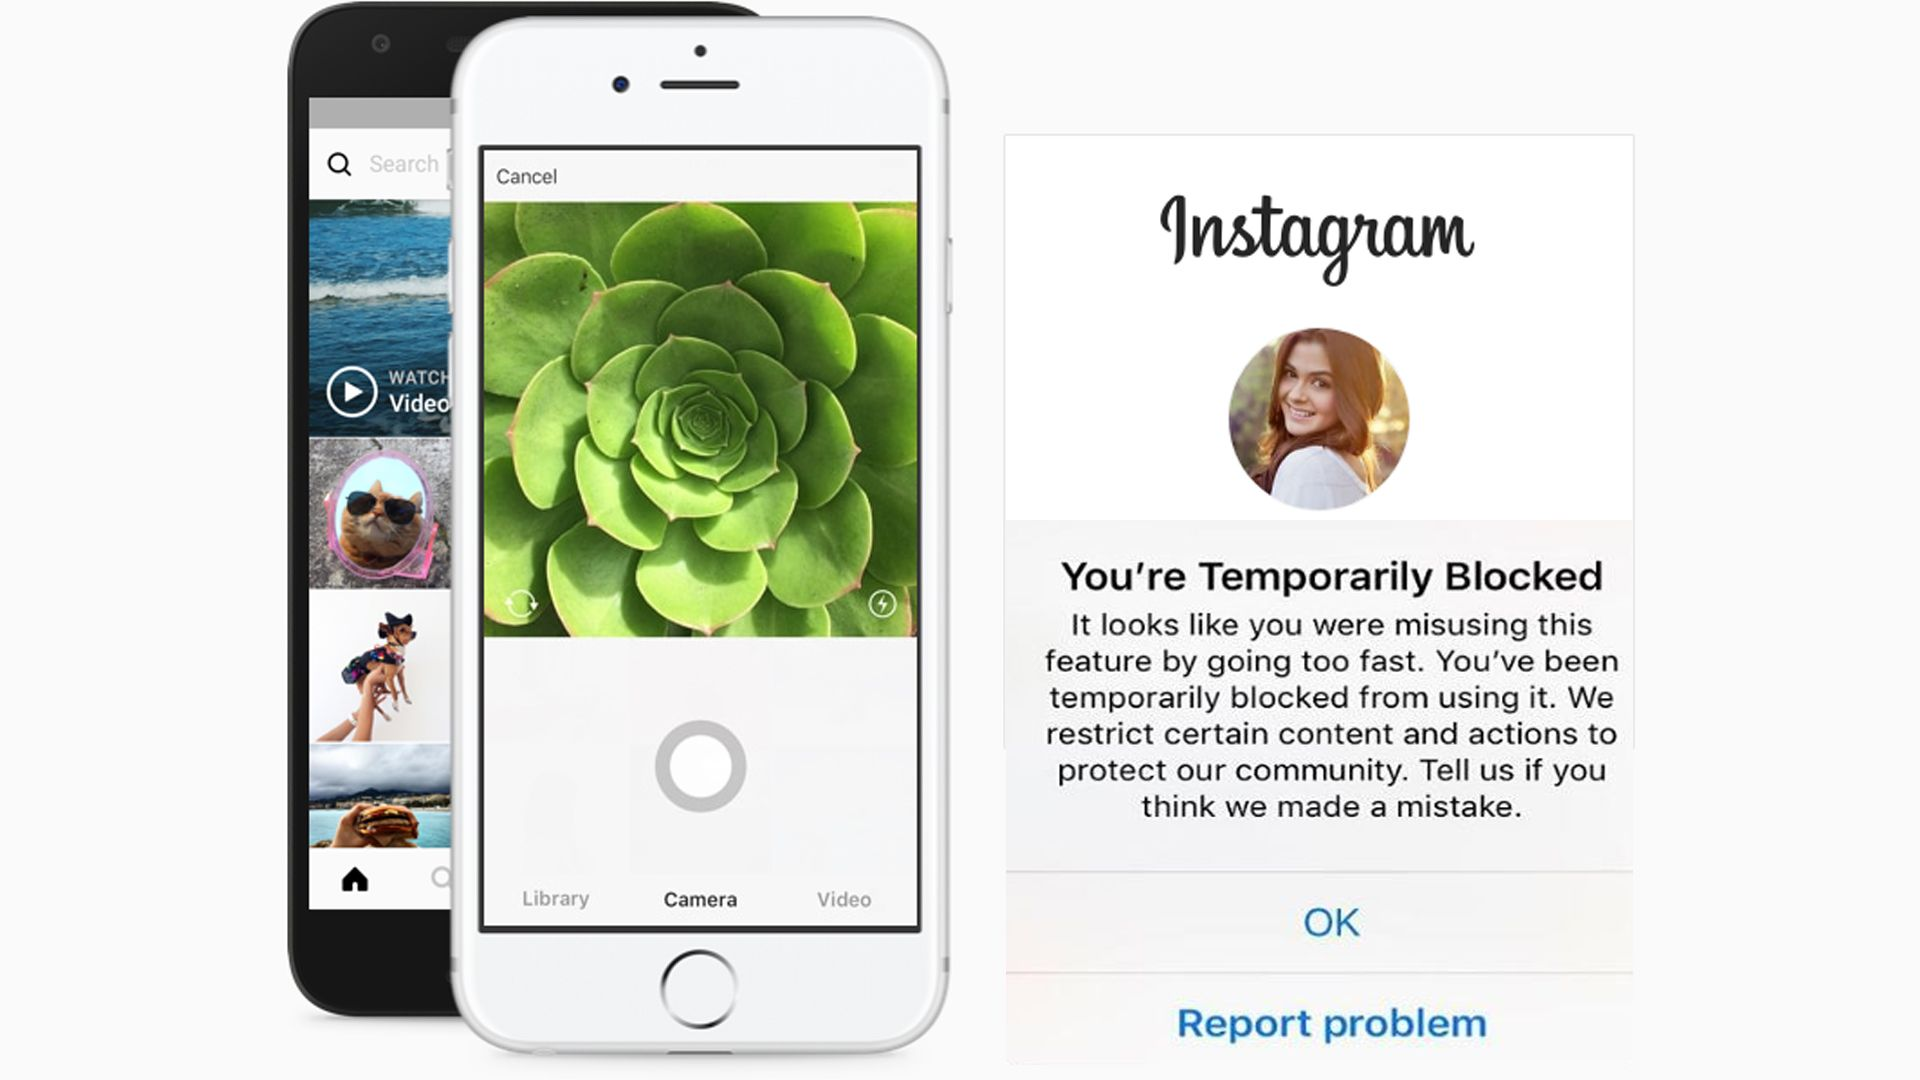 How To Temporarily Disable Instagram Account How To Disable Instagram Instagram Accounts Instagram